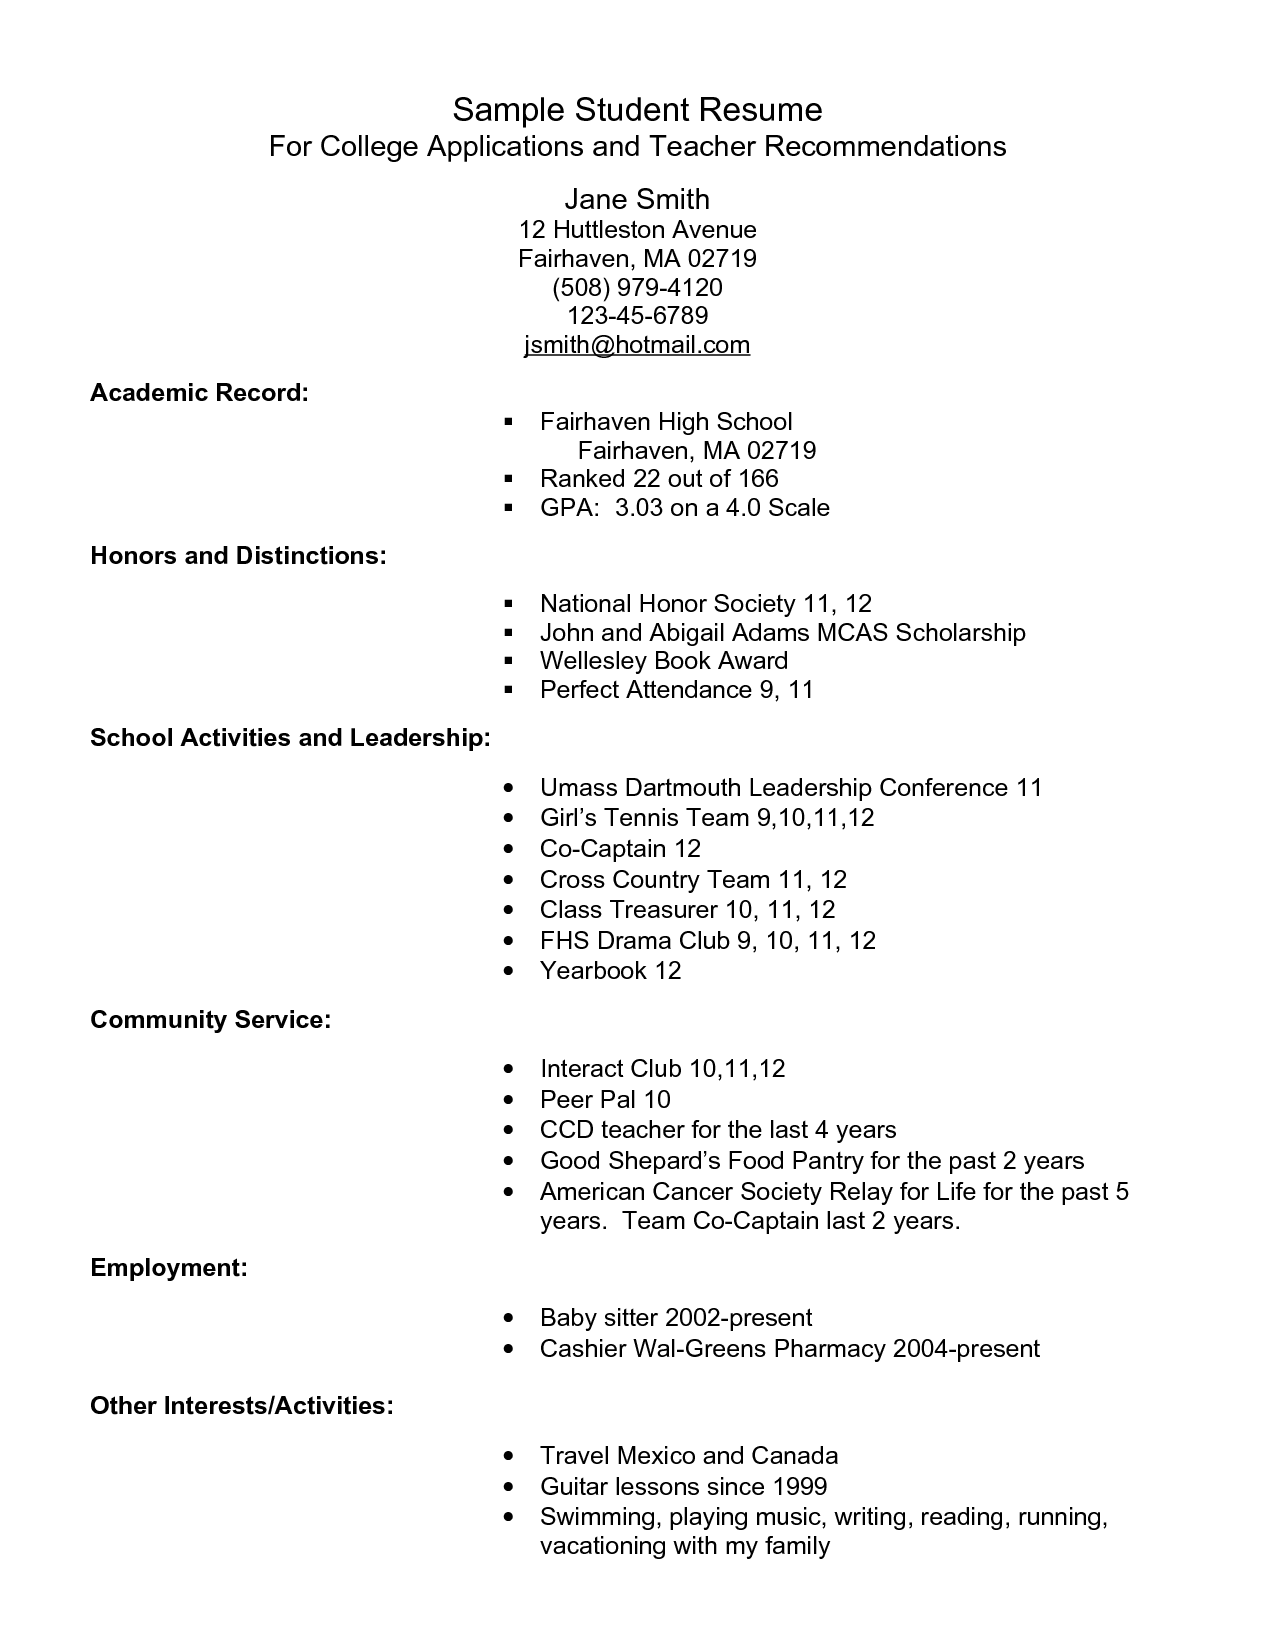 College Student Resume Examples Example Resume For High School Students For College Applications